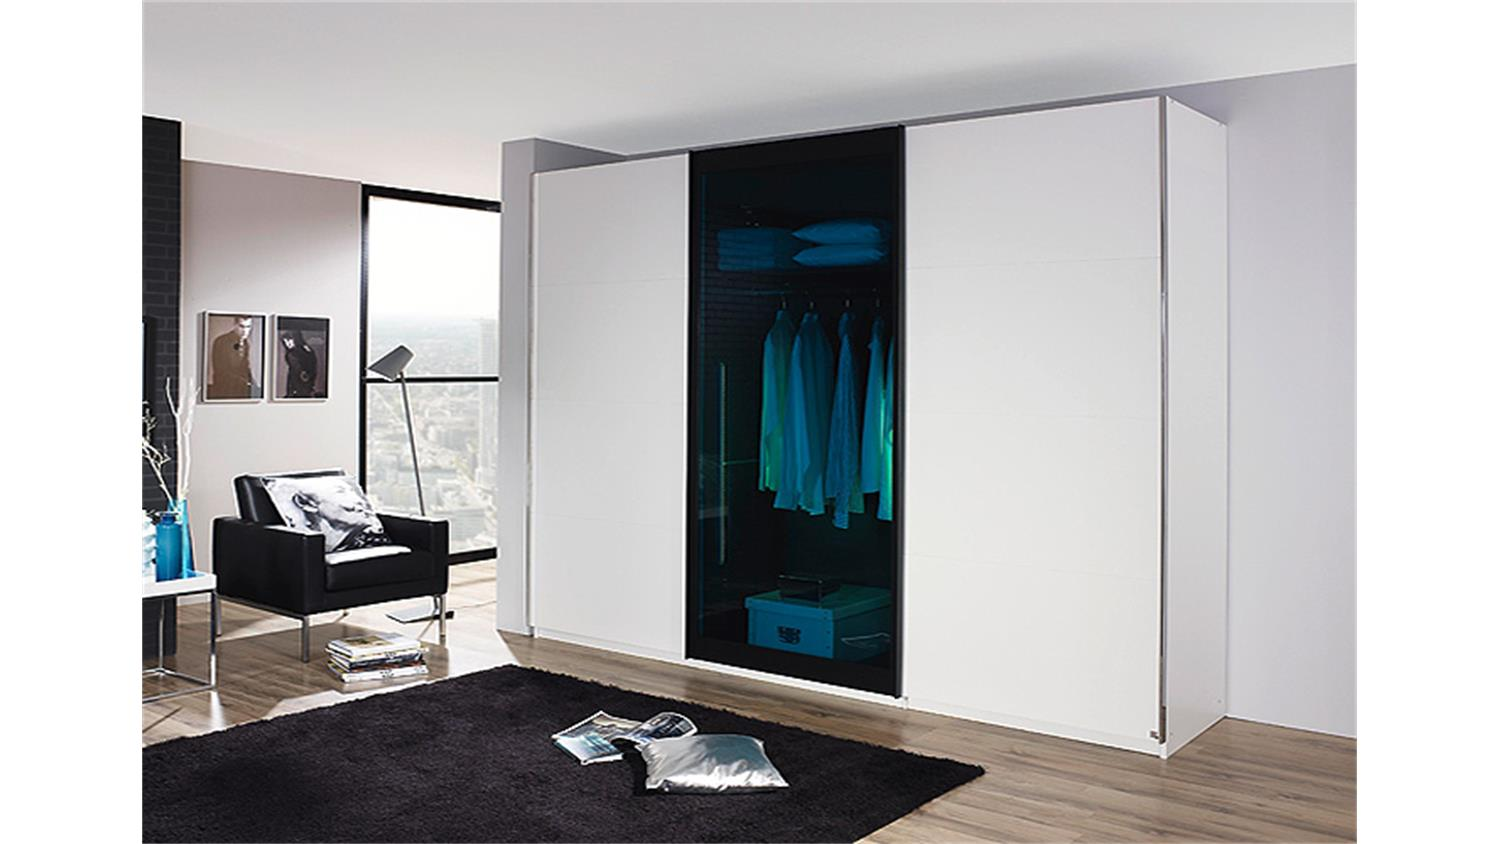 schwebet renschrank lahti wei petrol glas 315 cm. Black Bedroom Furniture Sets. Home Design Ideas